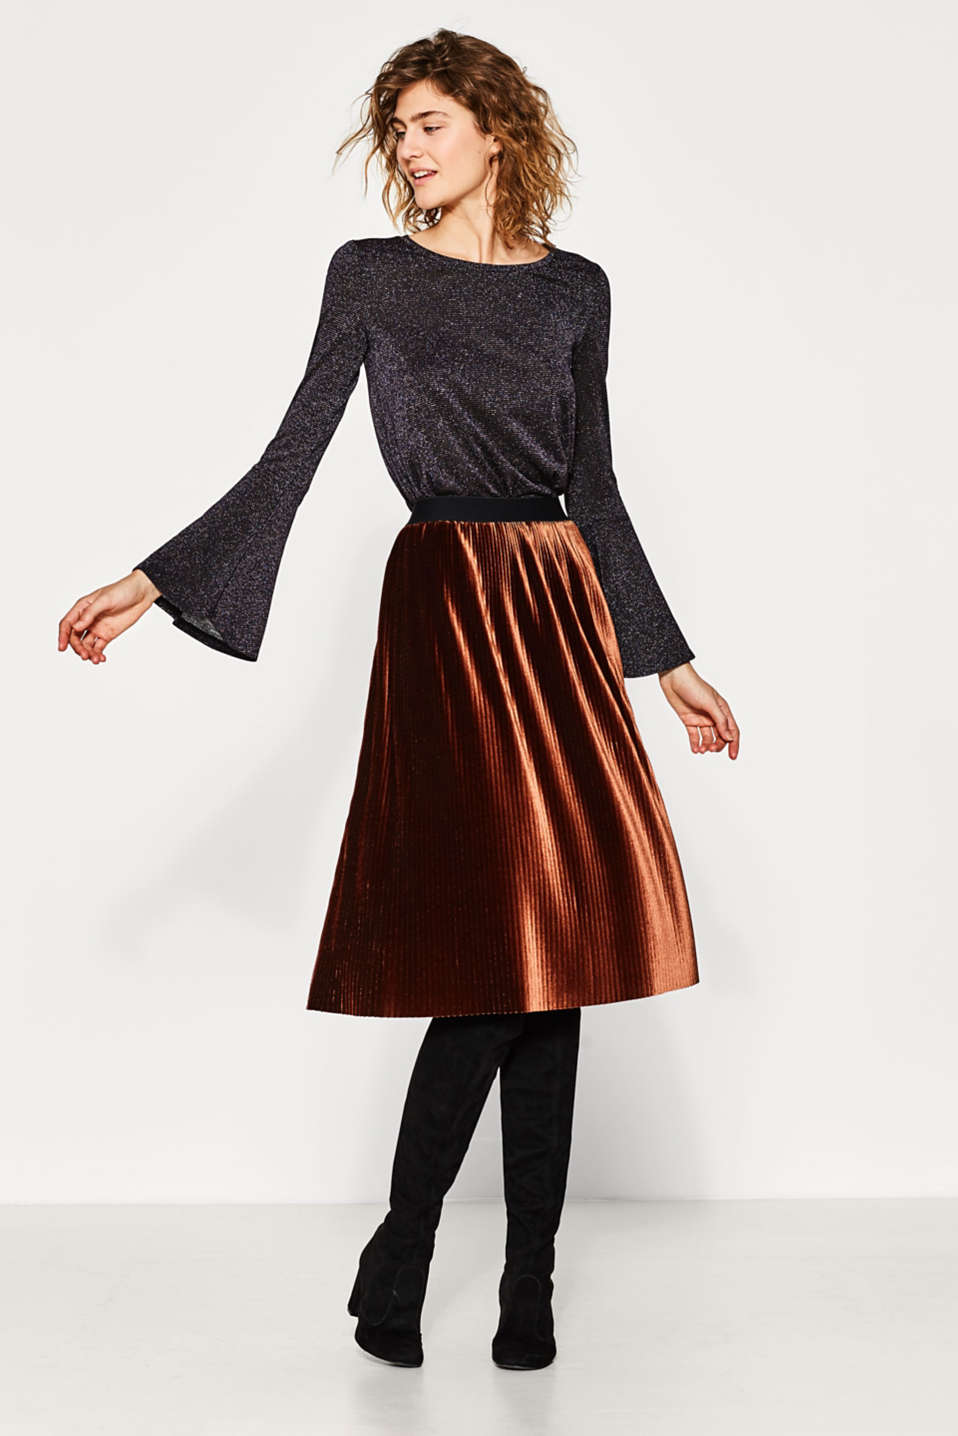 Glittering tee with trendy sleeves